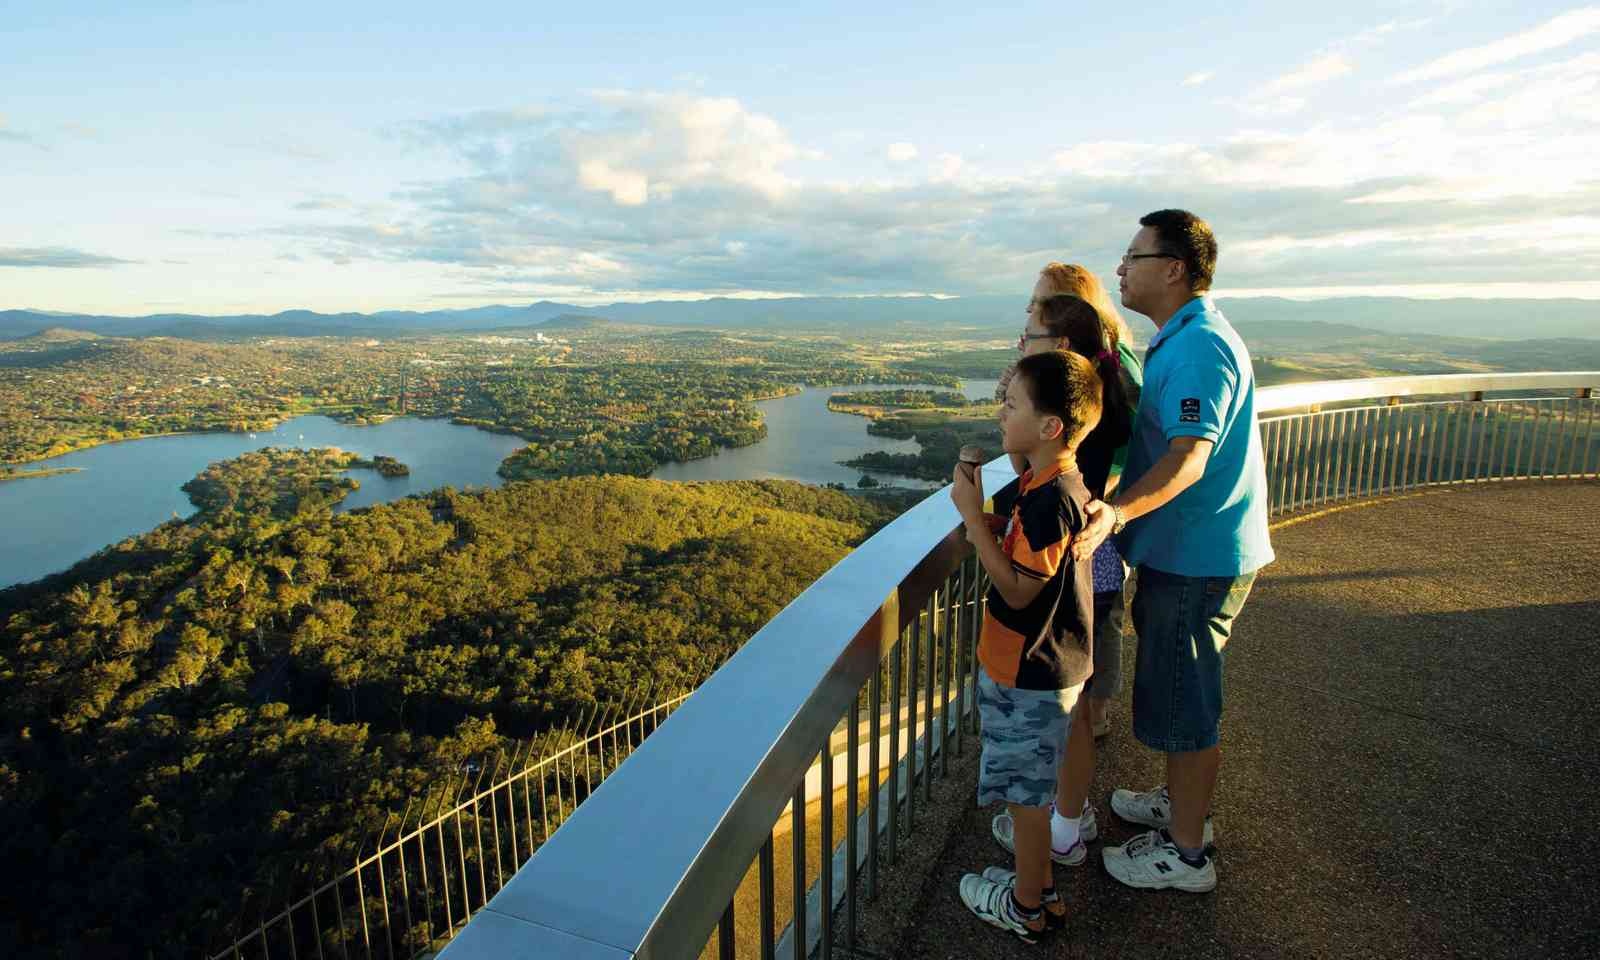 The view from Telstra Tower at Black Mountain (Visit Canberra)